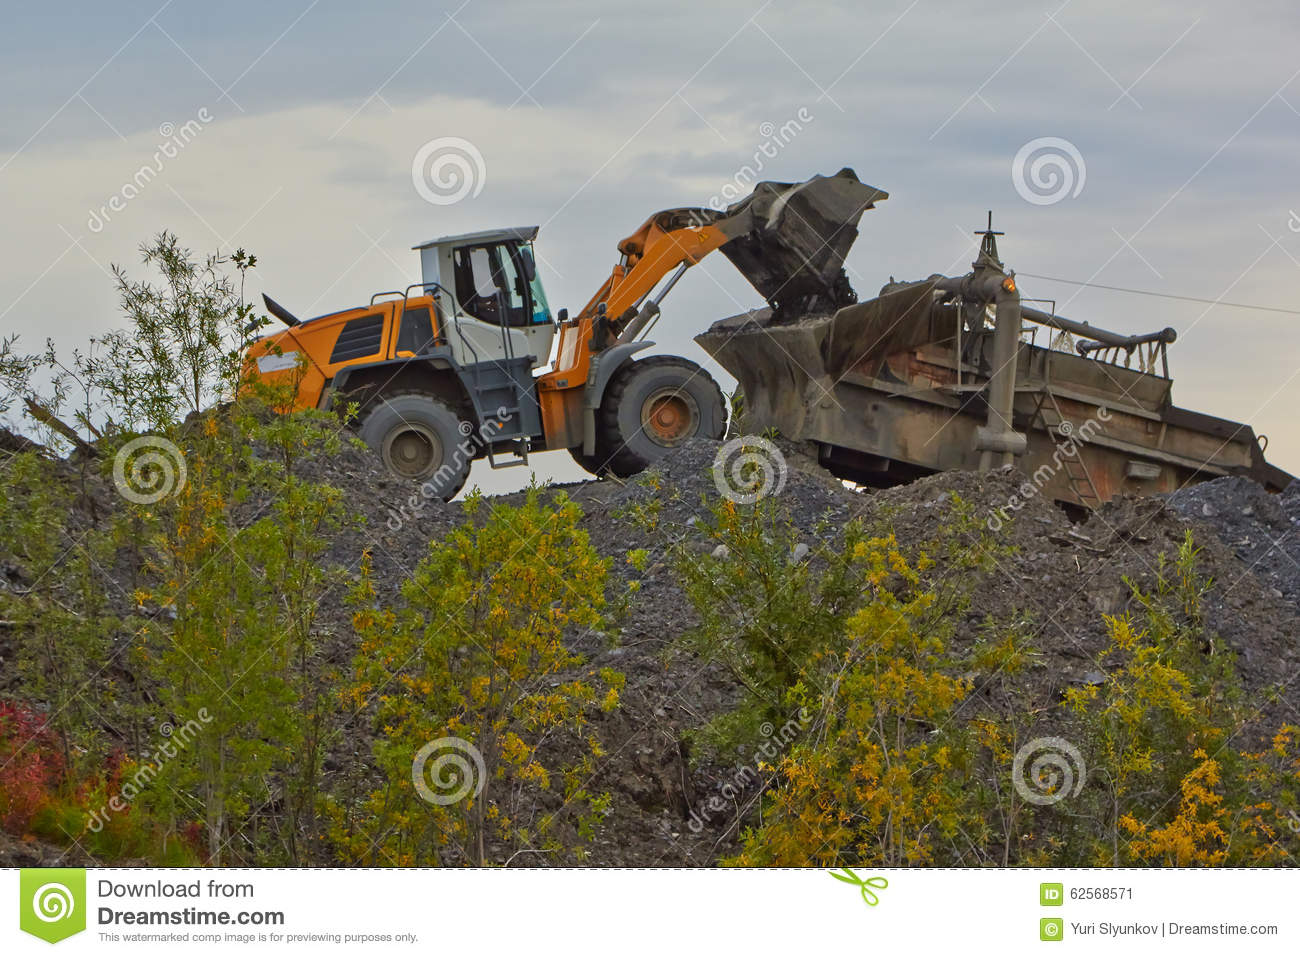 Gold mining in Susuman. An auto-loader and de-rocker